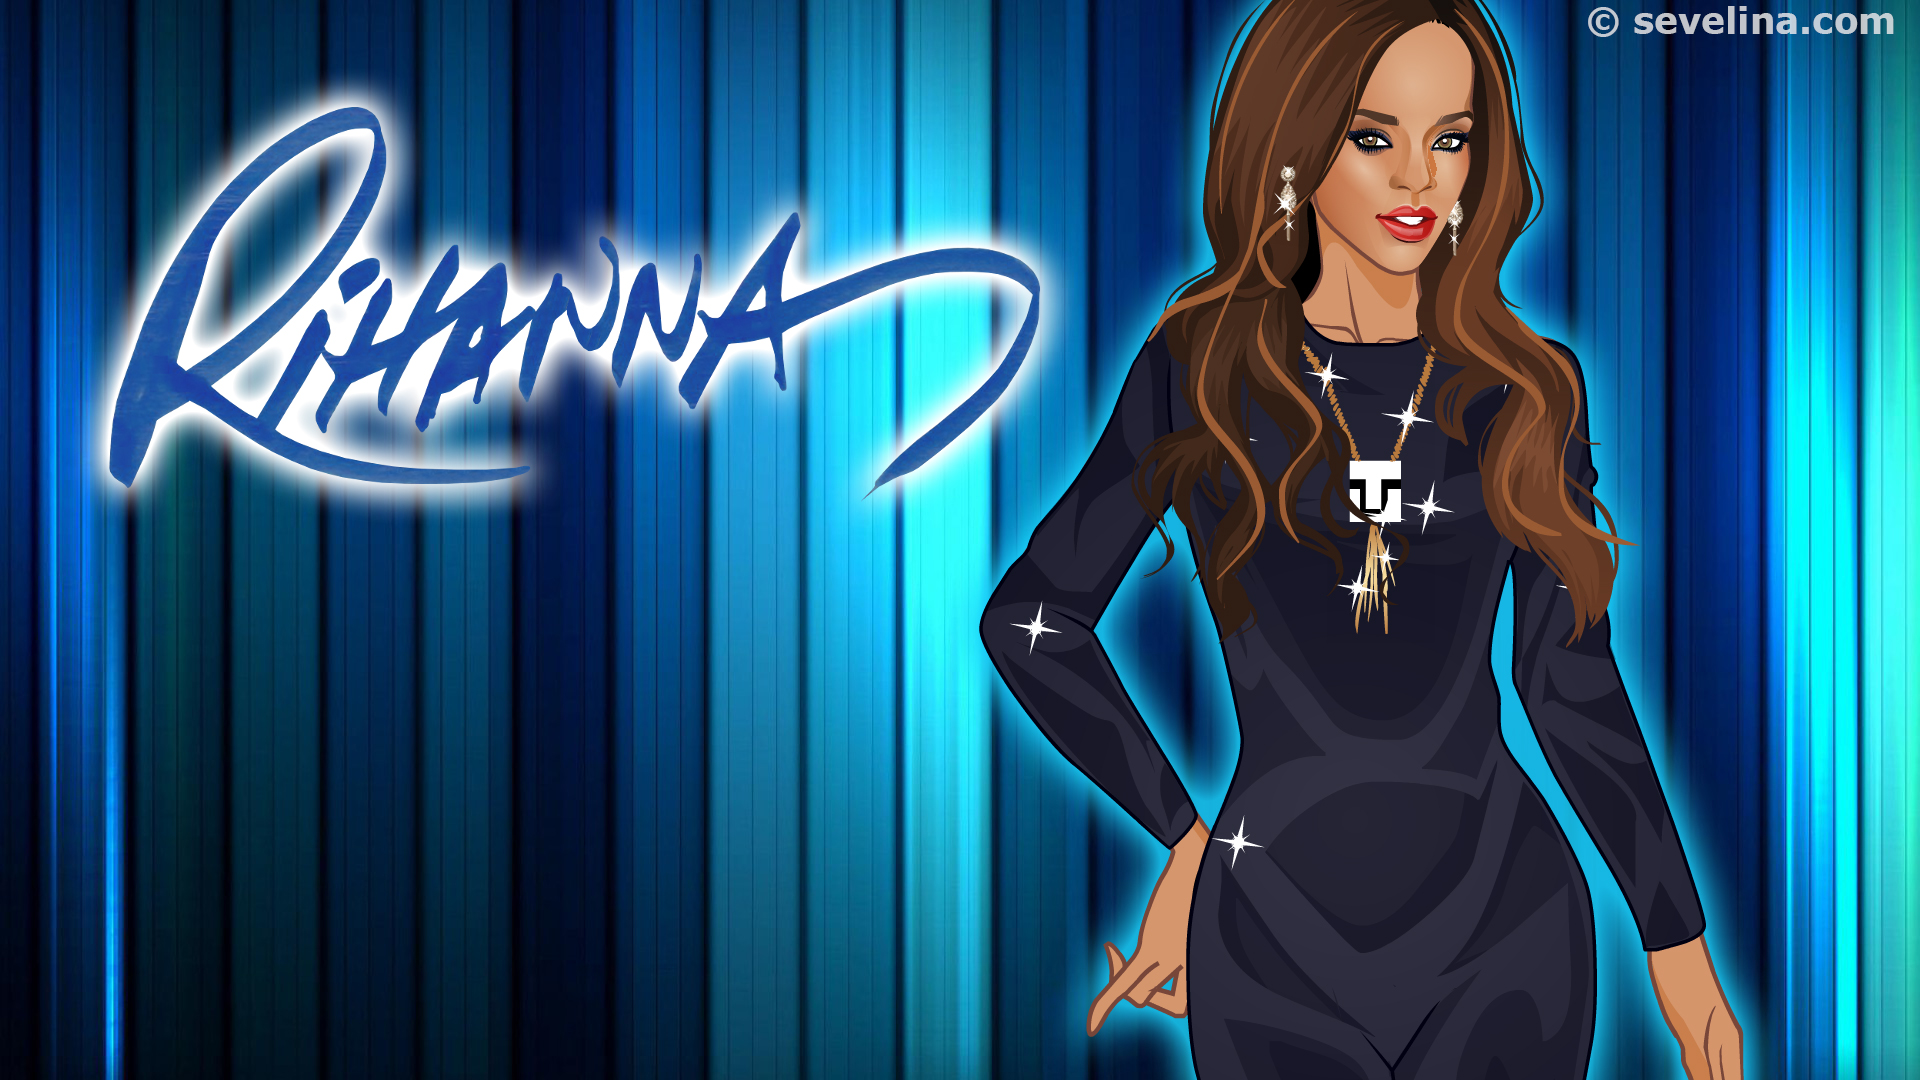 rihanna-wallpapers-2014-sevelina-dress-up-games-13